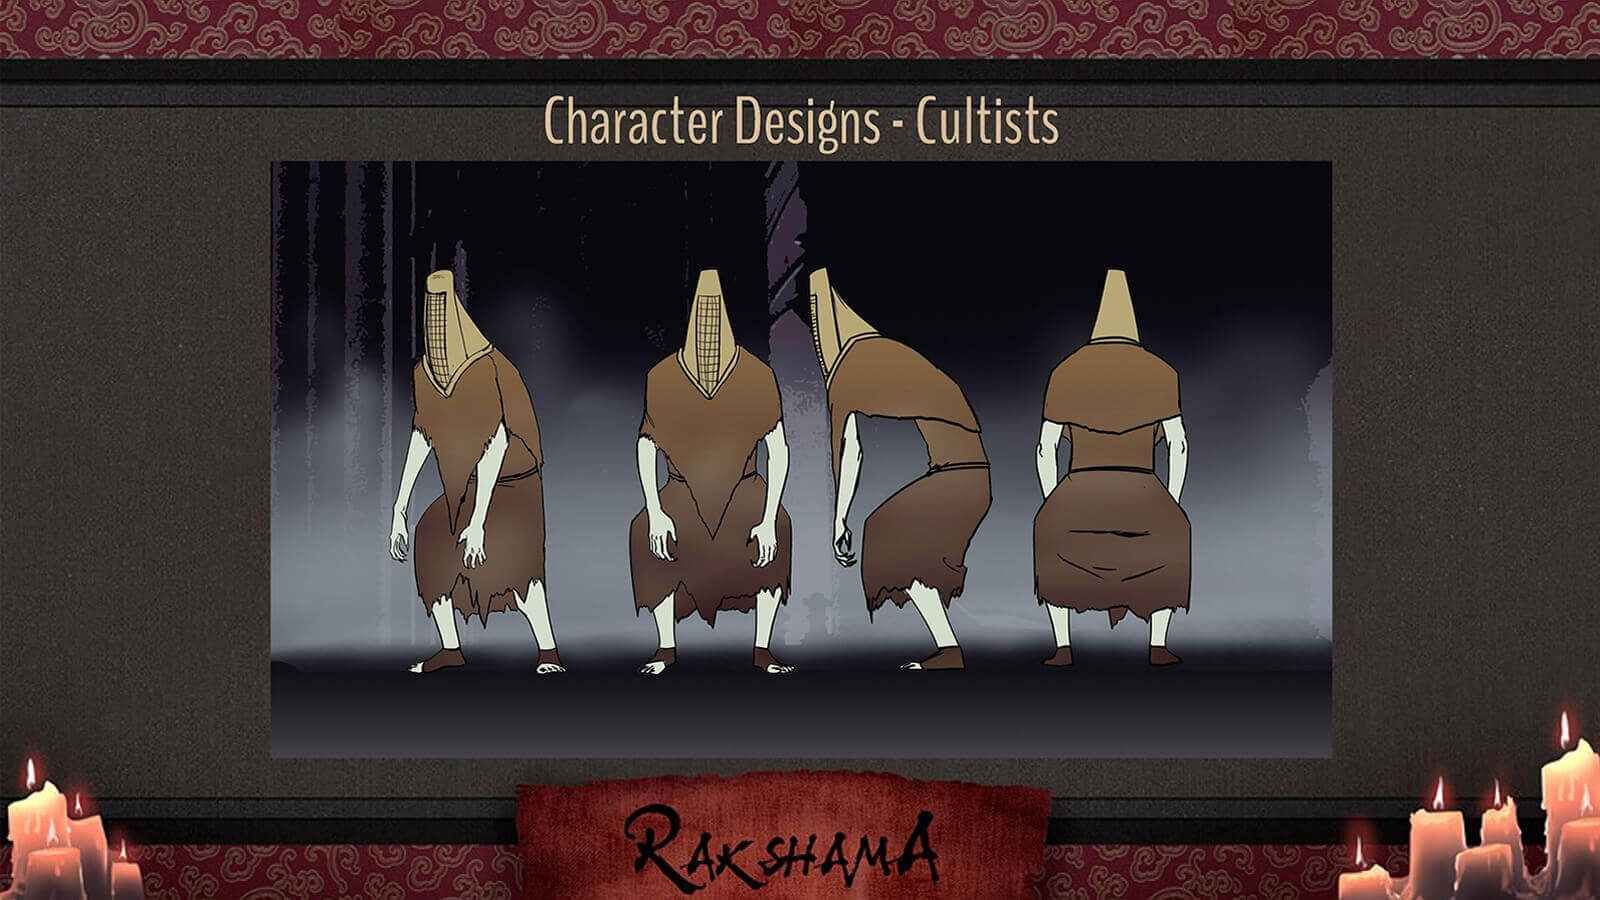 Character Design slide for the film Rakshama, depicting cultist characters, pale figures in brown rags and a wicker helmets